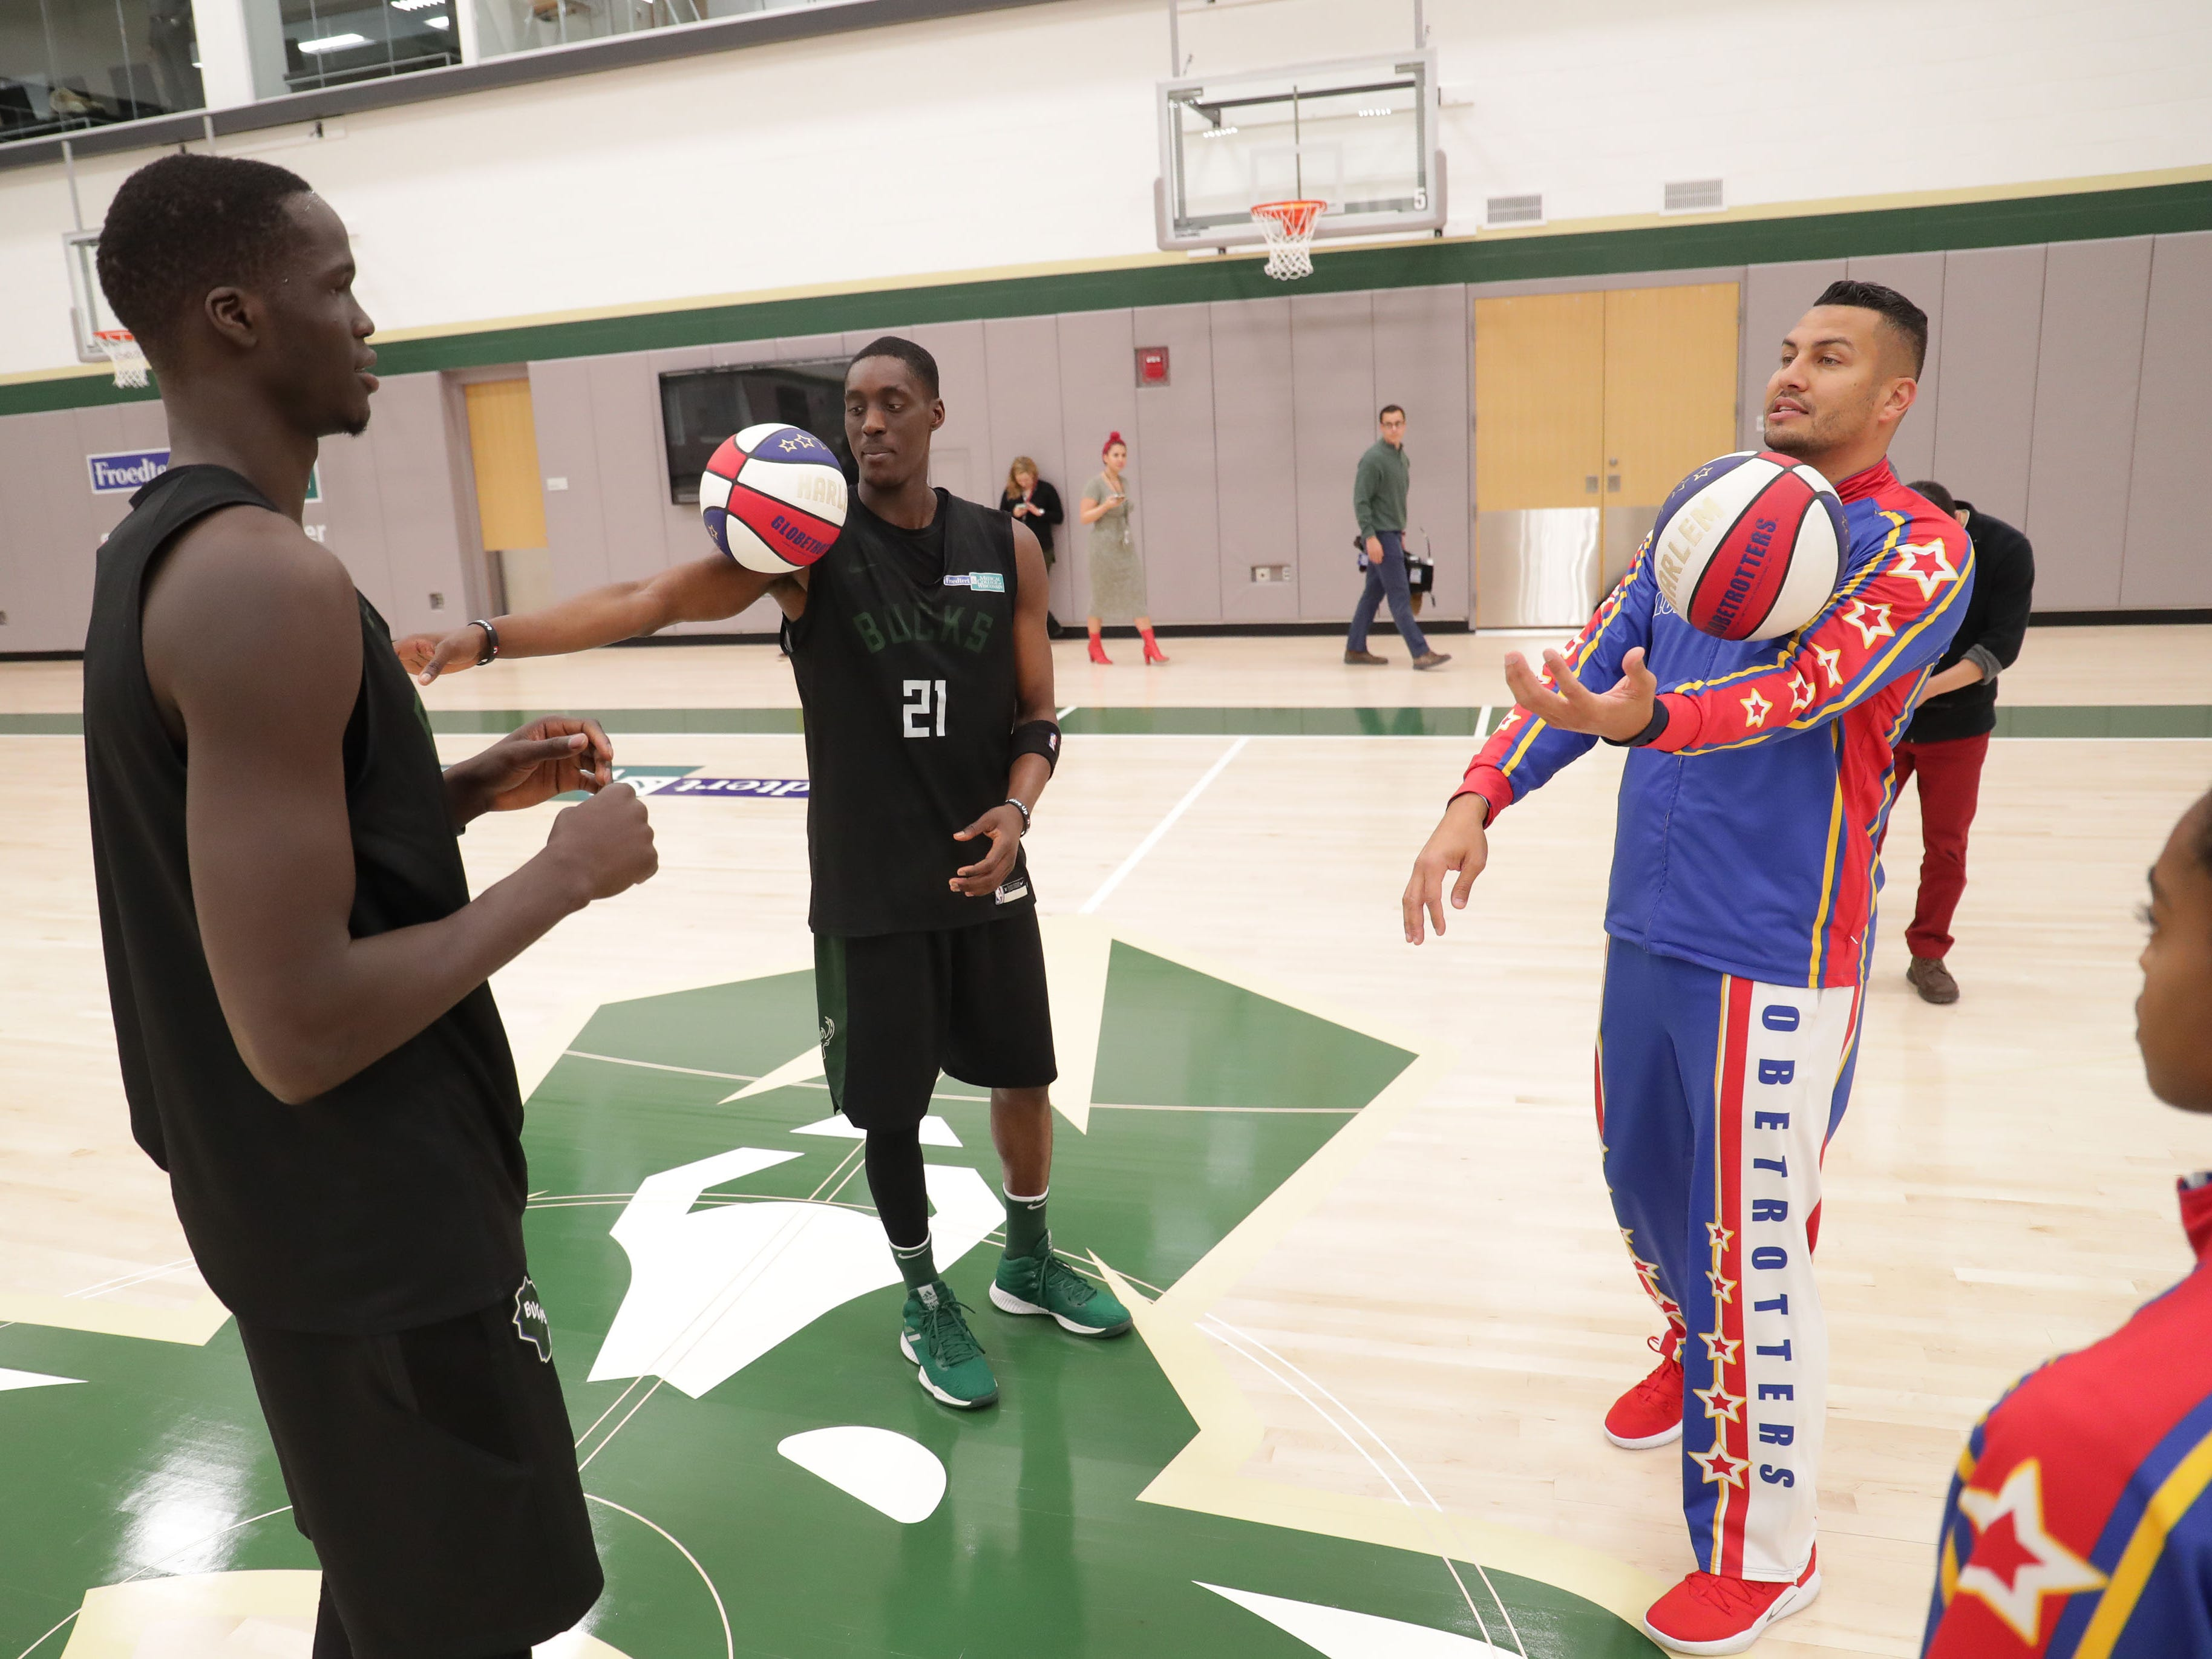 The Bucks' Thon Maker (left) and Tony Snell get a few pointers from the Harlem Globetrotters' Orlando El Gato Melendez.